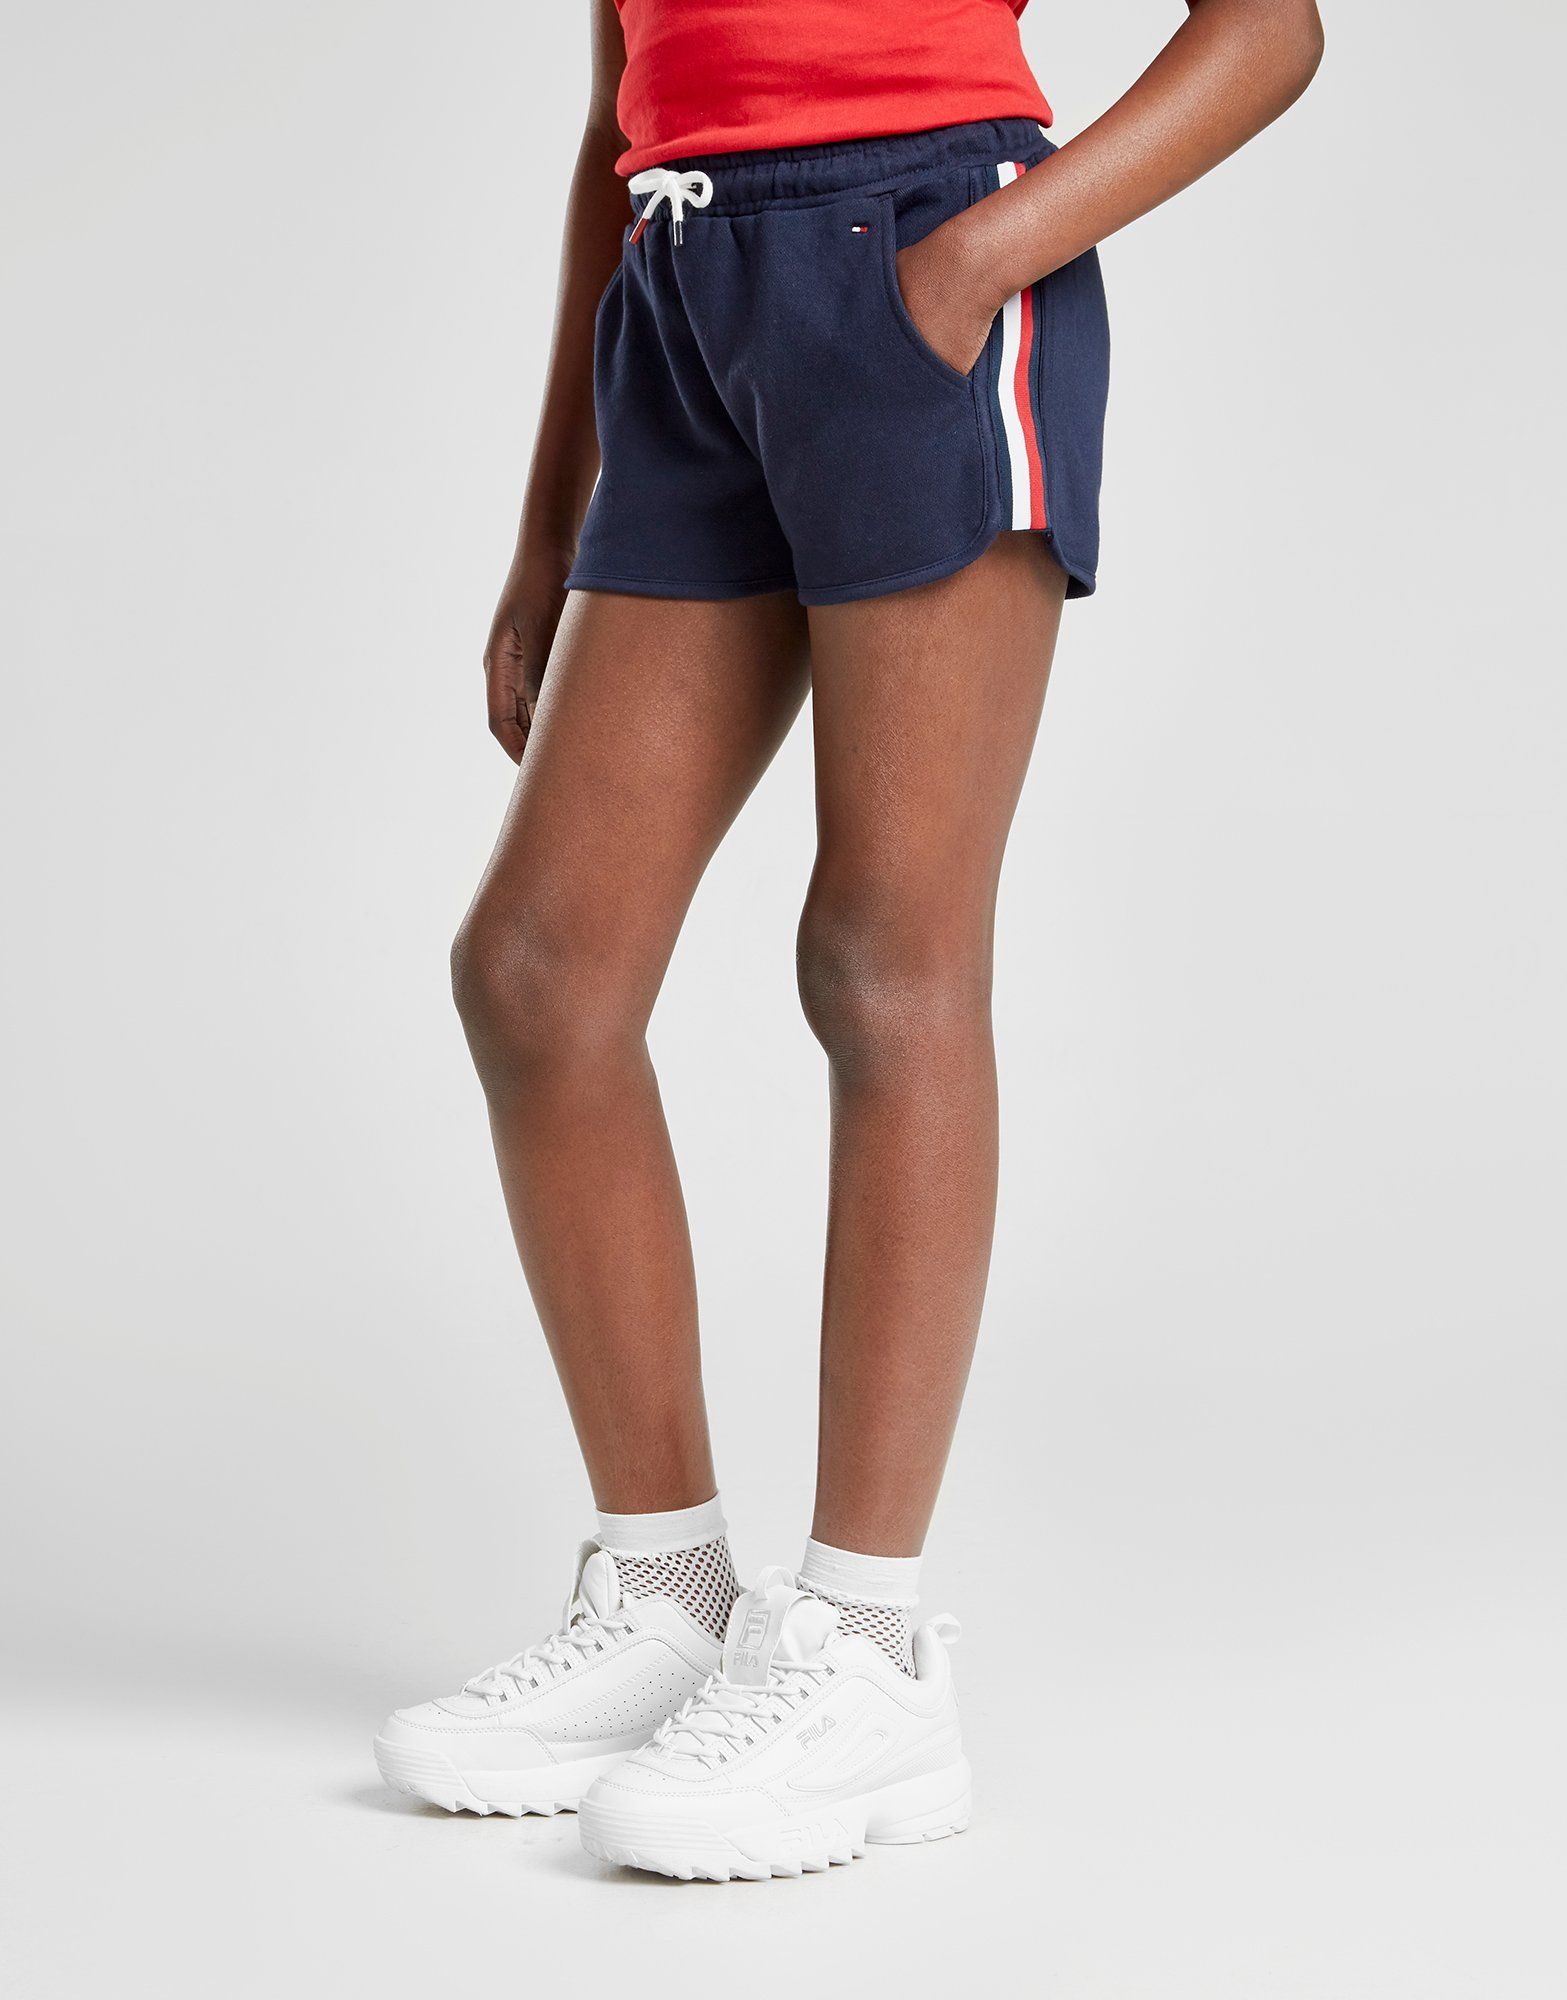 Tommy Hilfiger Girls' Tape Shorts Junior by Tommy Hilfiger